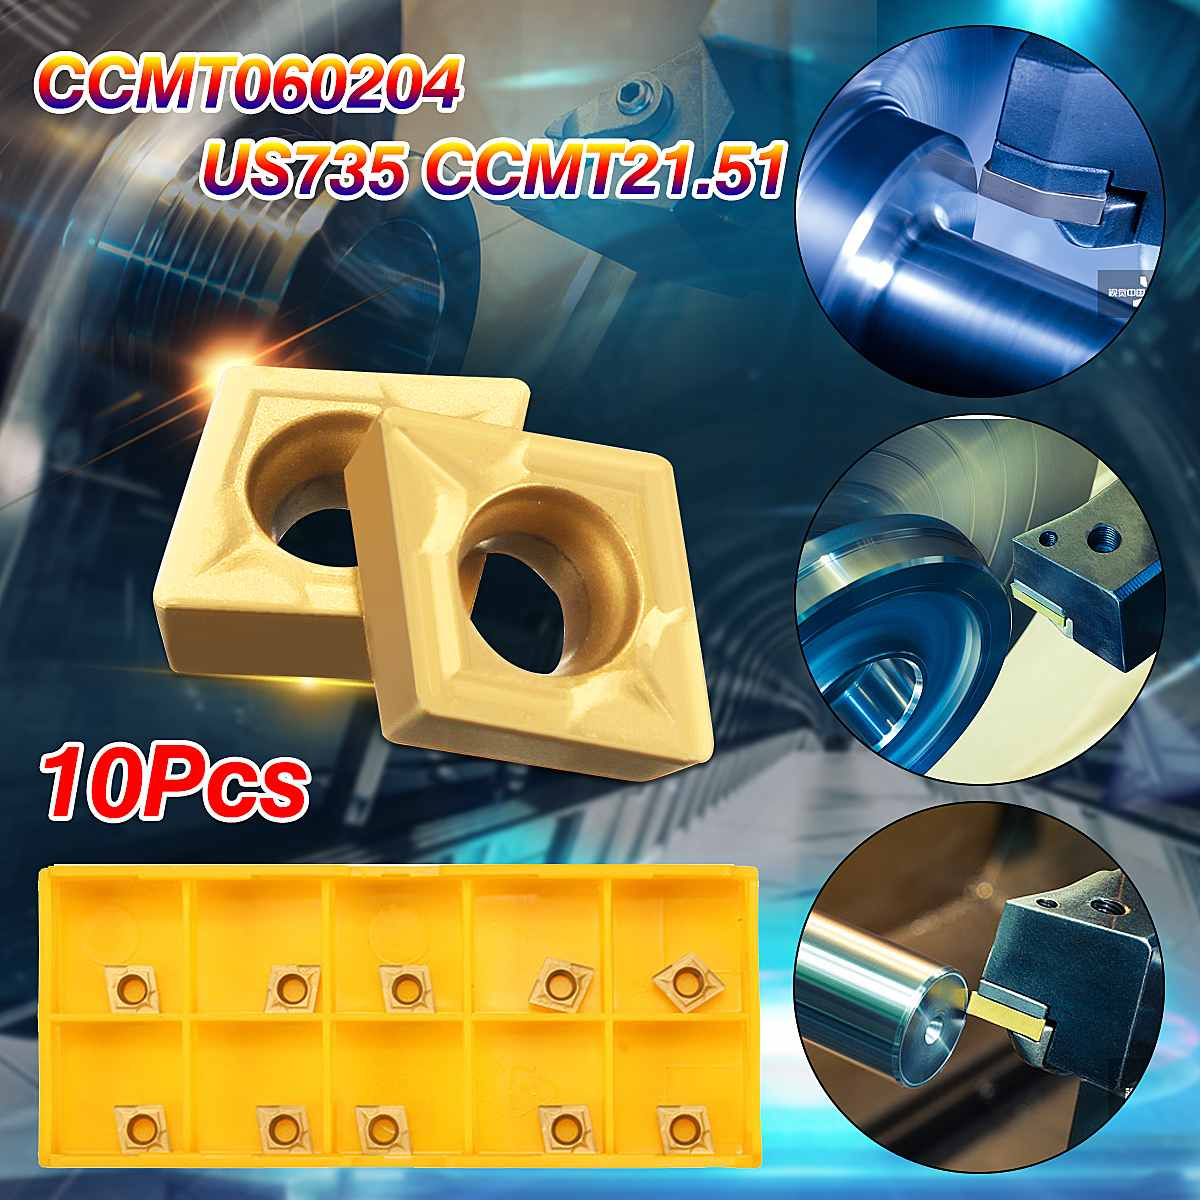 10Pcs CCMT060204 US735 CCMT21.51 CNC Carbide Inserts For Steel/Stainless Steel